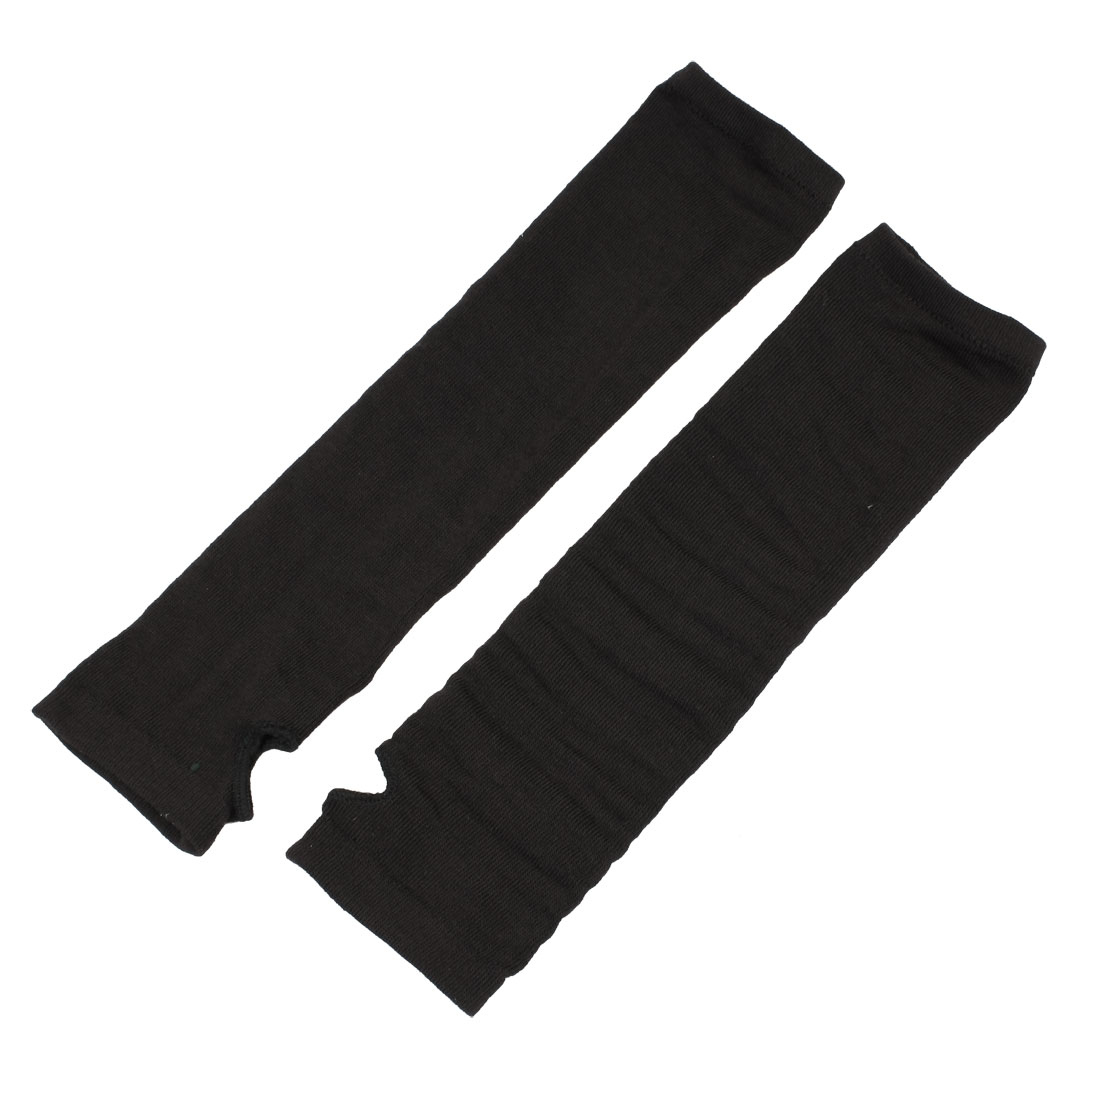 Pair Black Elastic Knitted Fingerless Thumbhole Elbow Warm Gloves for Lady